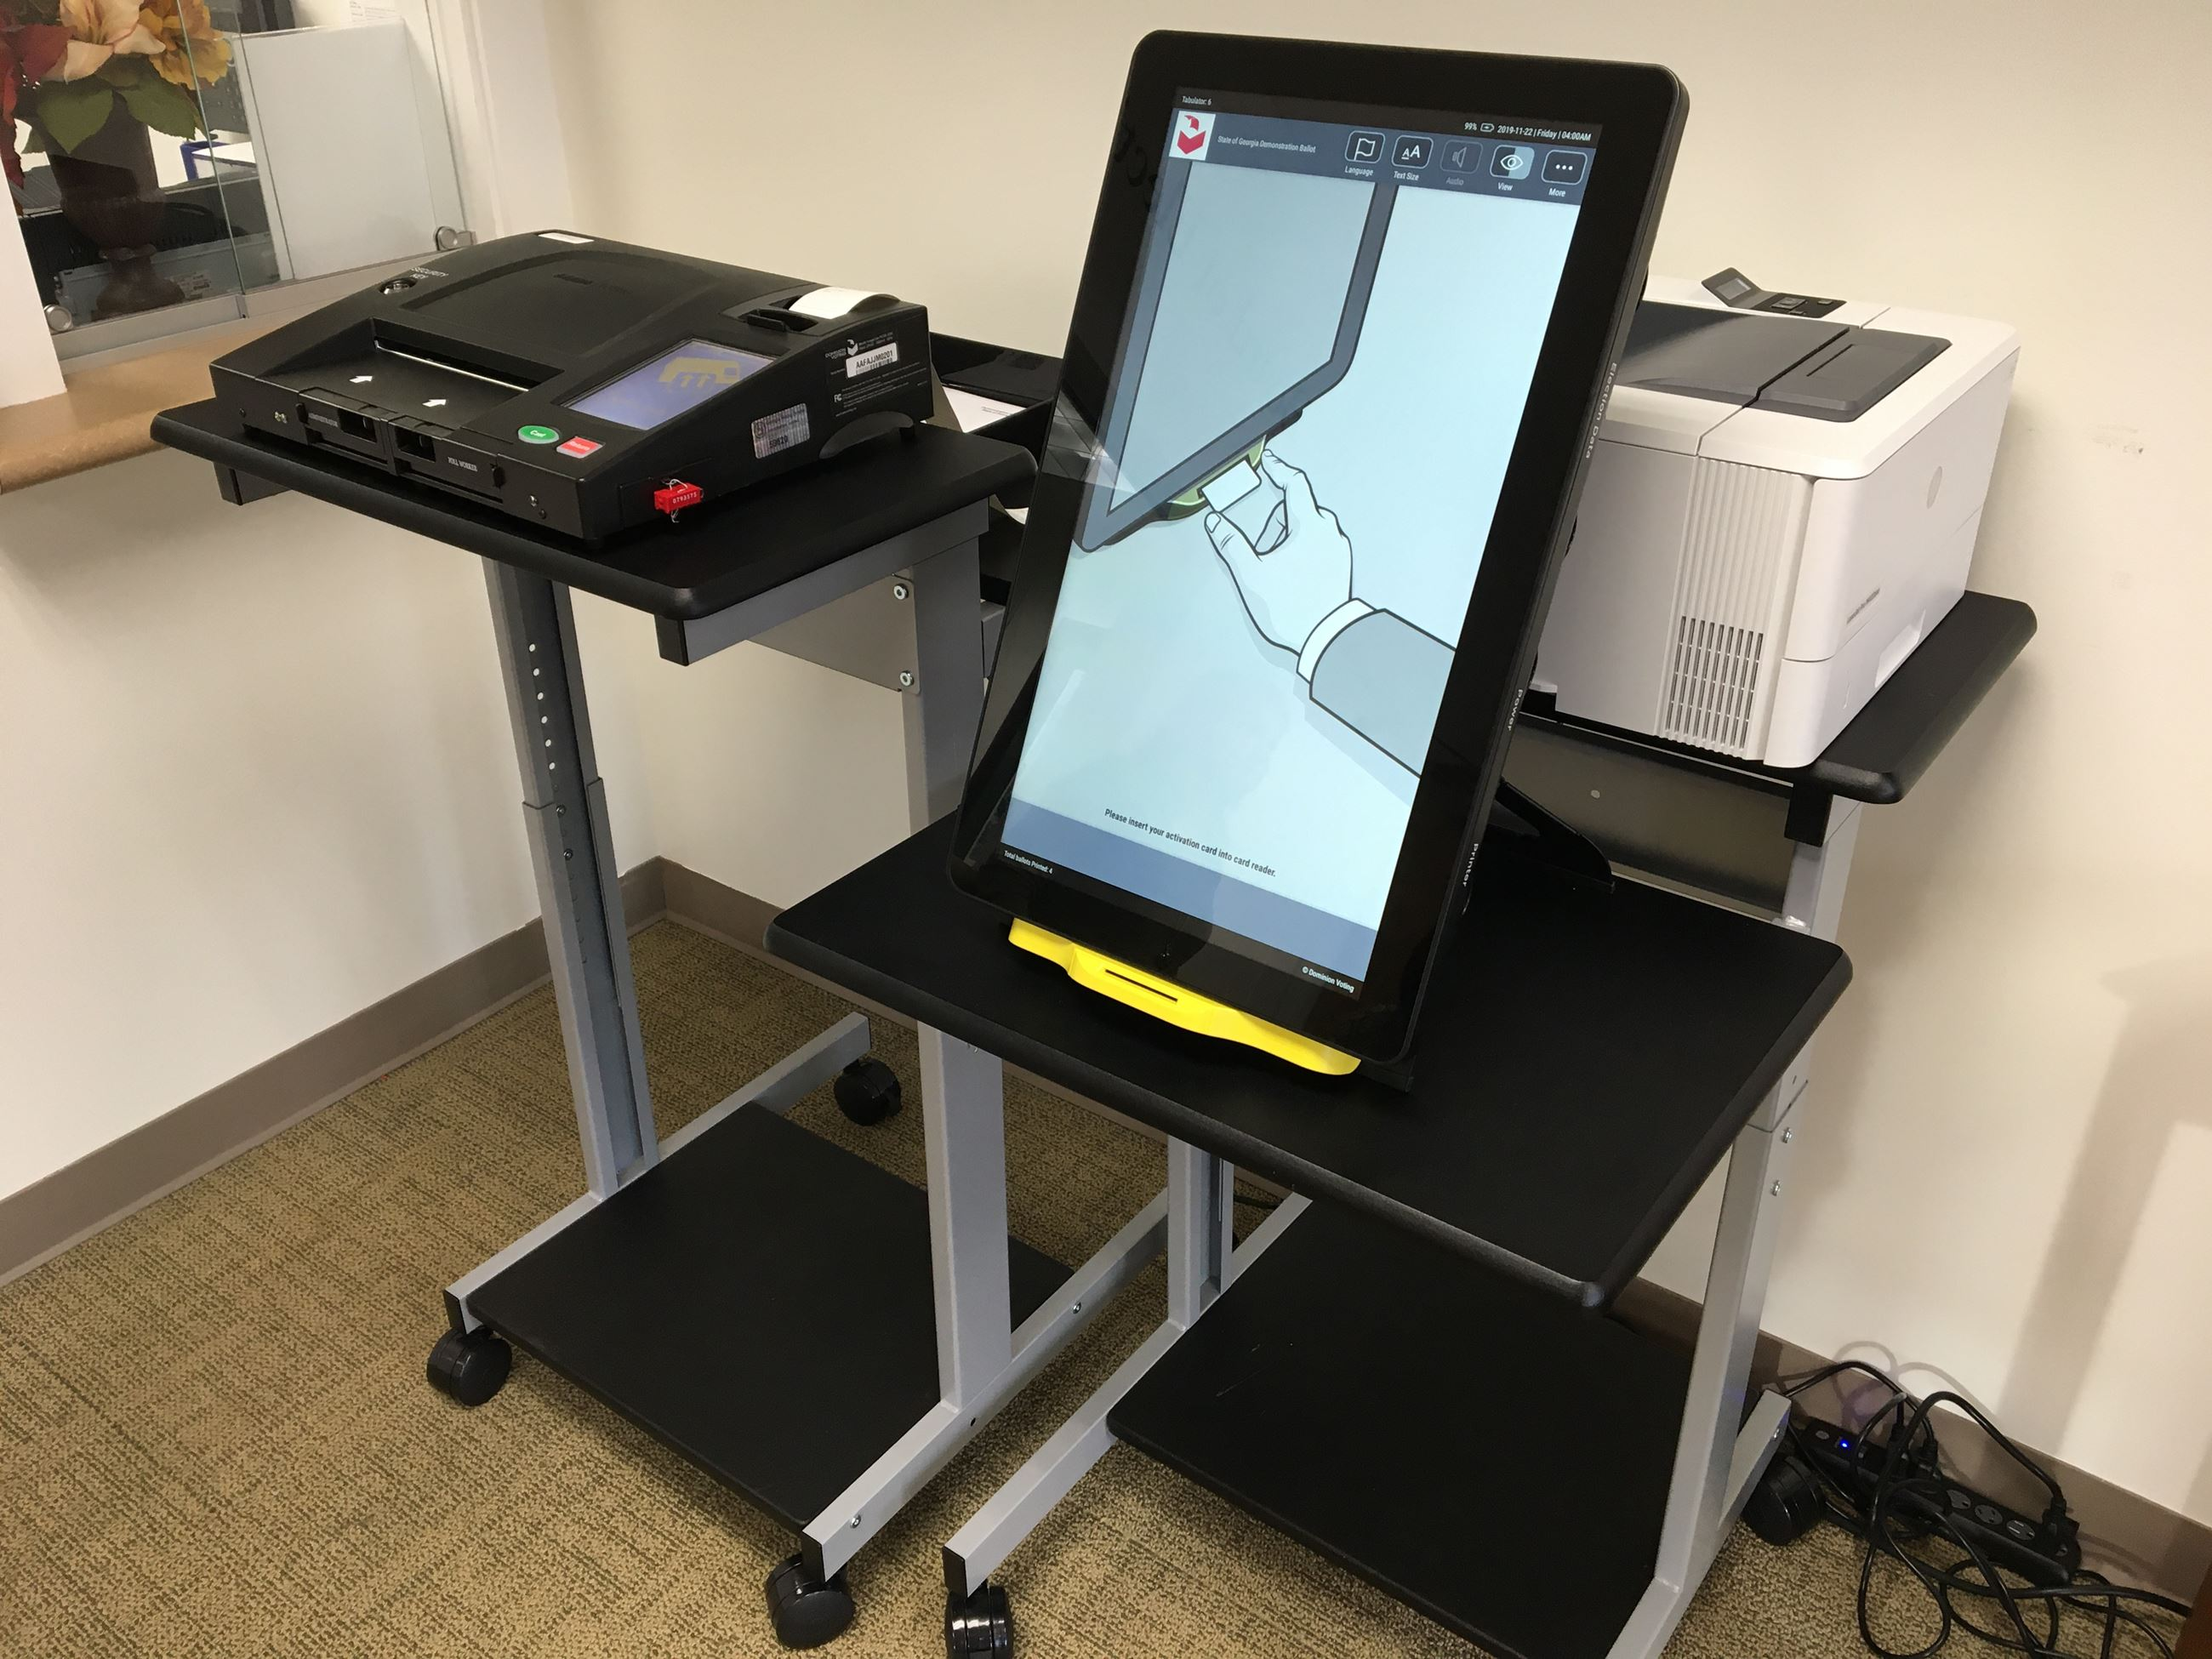 New voting equipment demonstration units available for public use